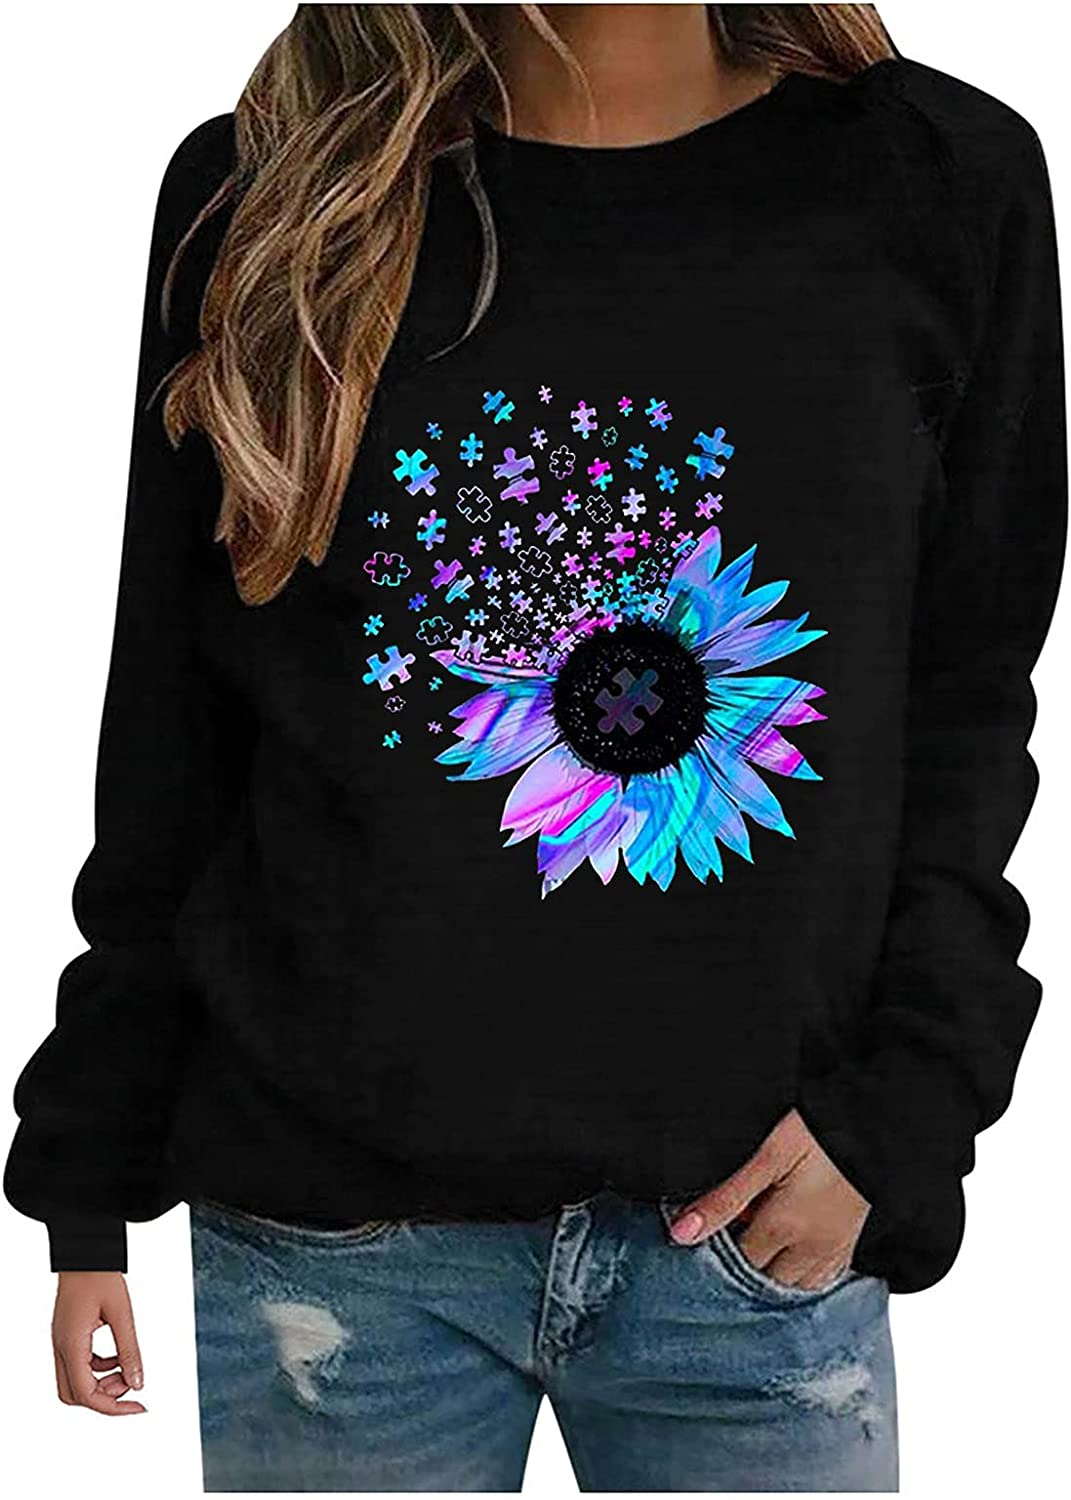 Women Plus Size Fall Sweatshirts,Chic Sunflower Graphic Casual Vintage Y2K Long Sleeve Crewneck Blouse Tshirts Pullover